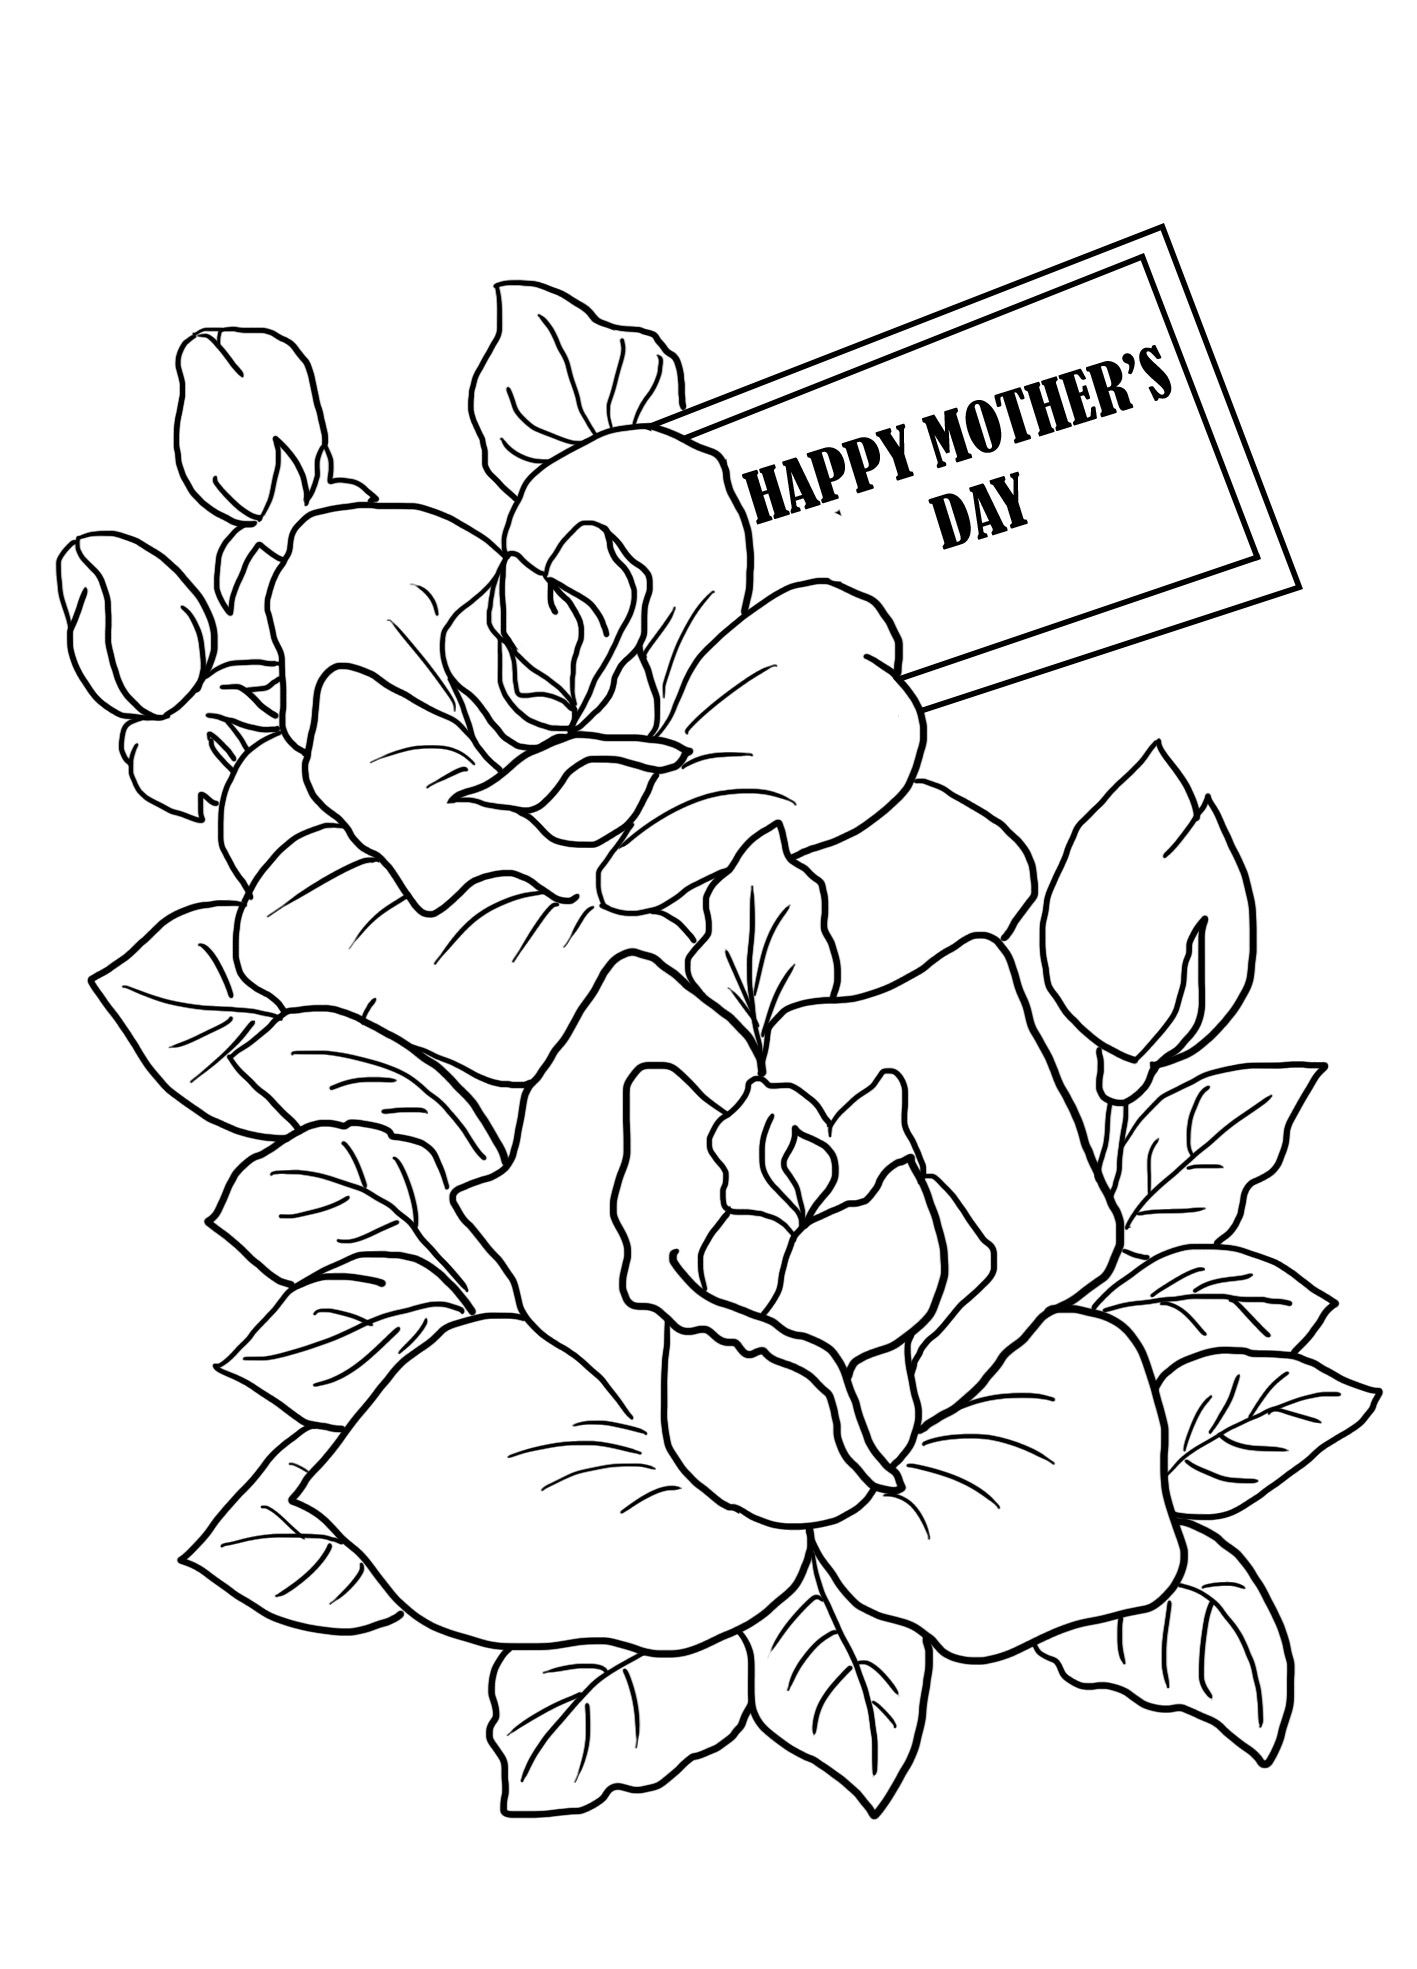 New Mothers Day Colouring #coloring #coloringpages